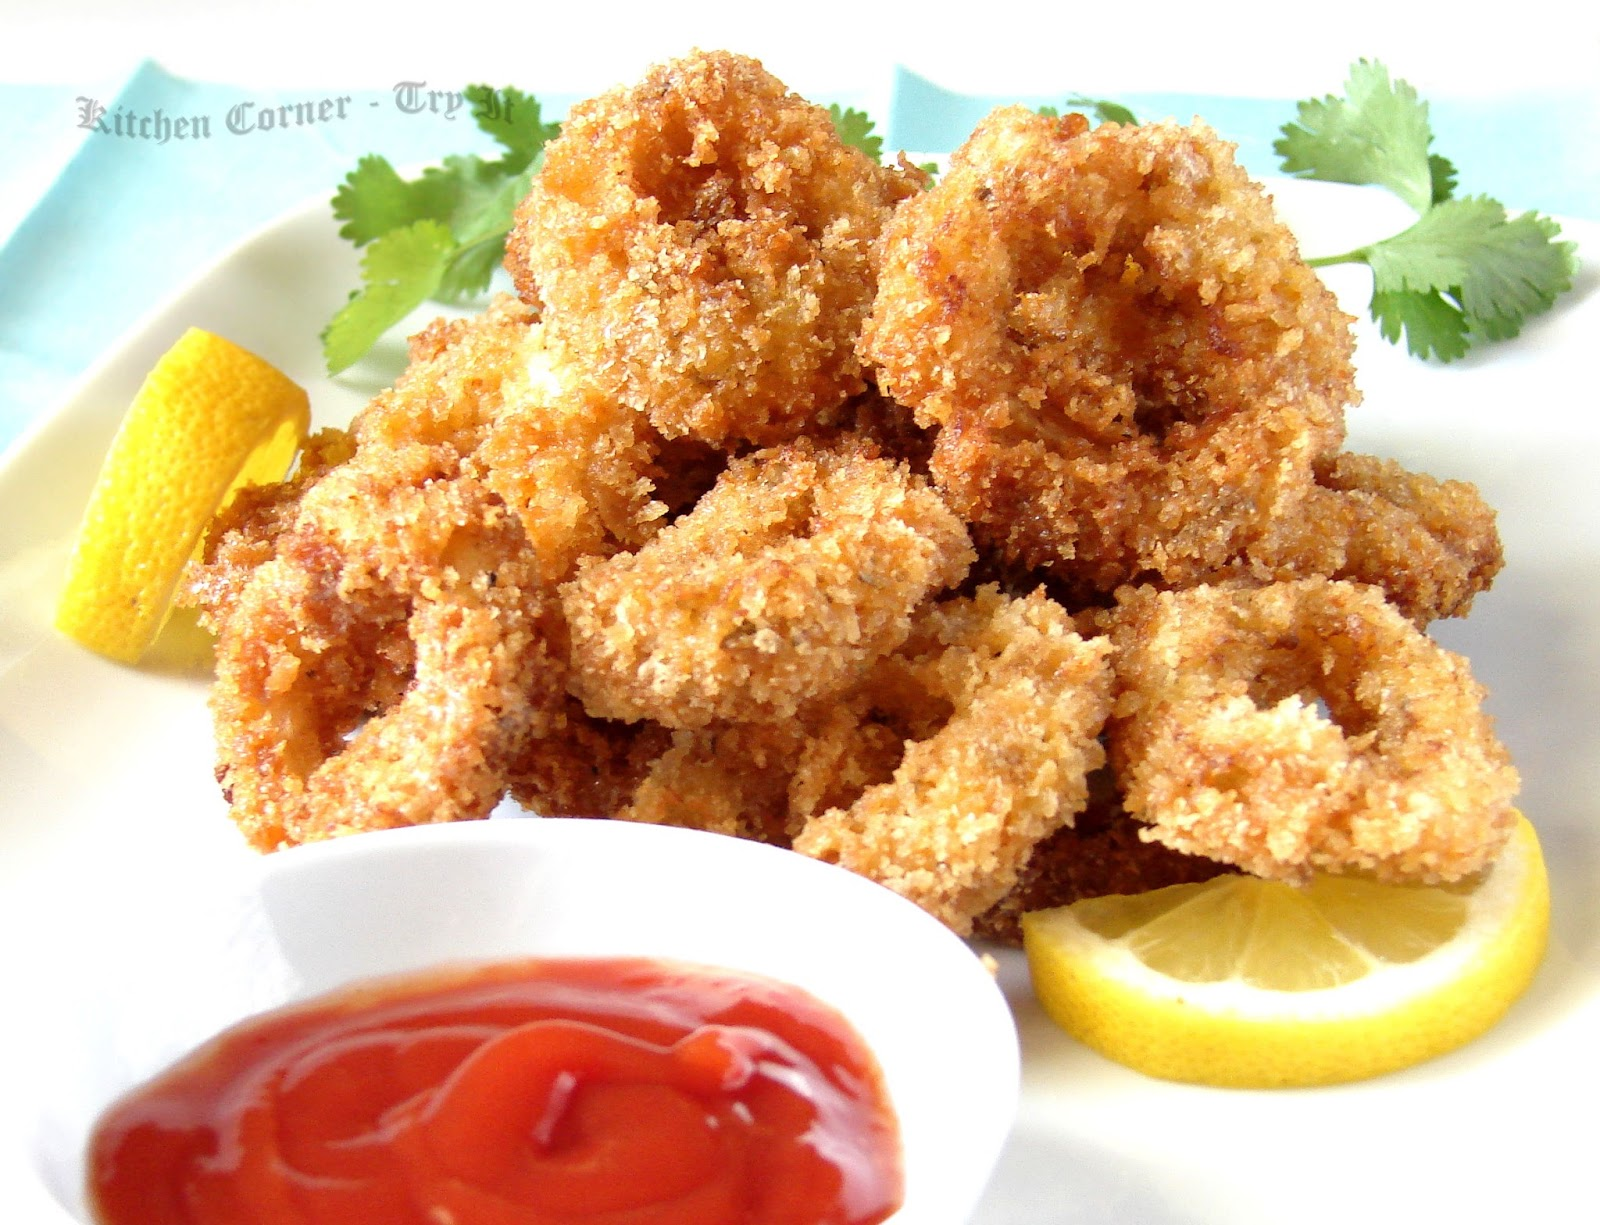 Kitchen Corner-Try It: Crispy Calamari/Squid Rings